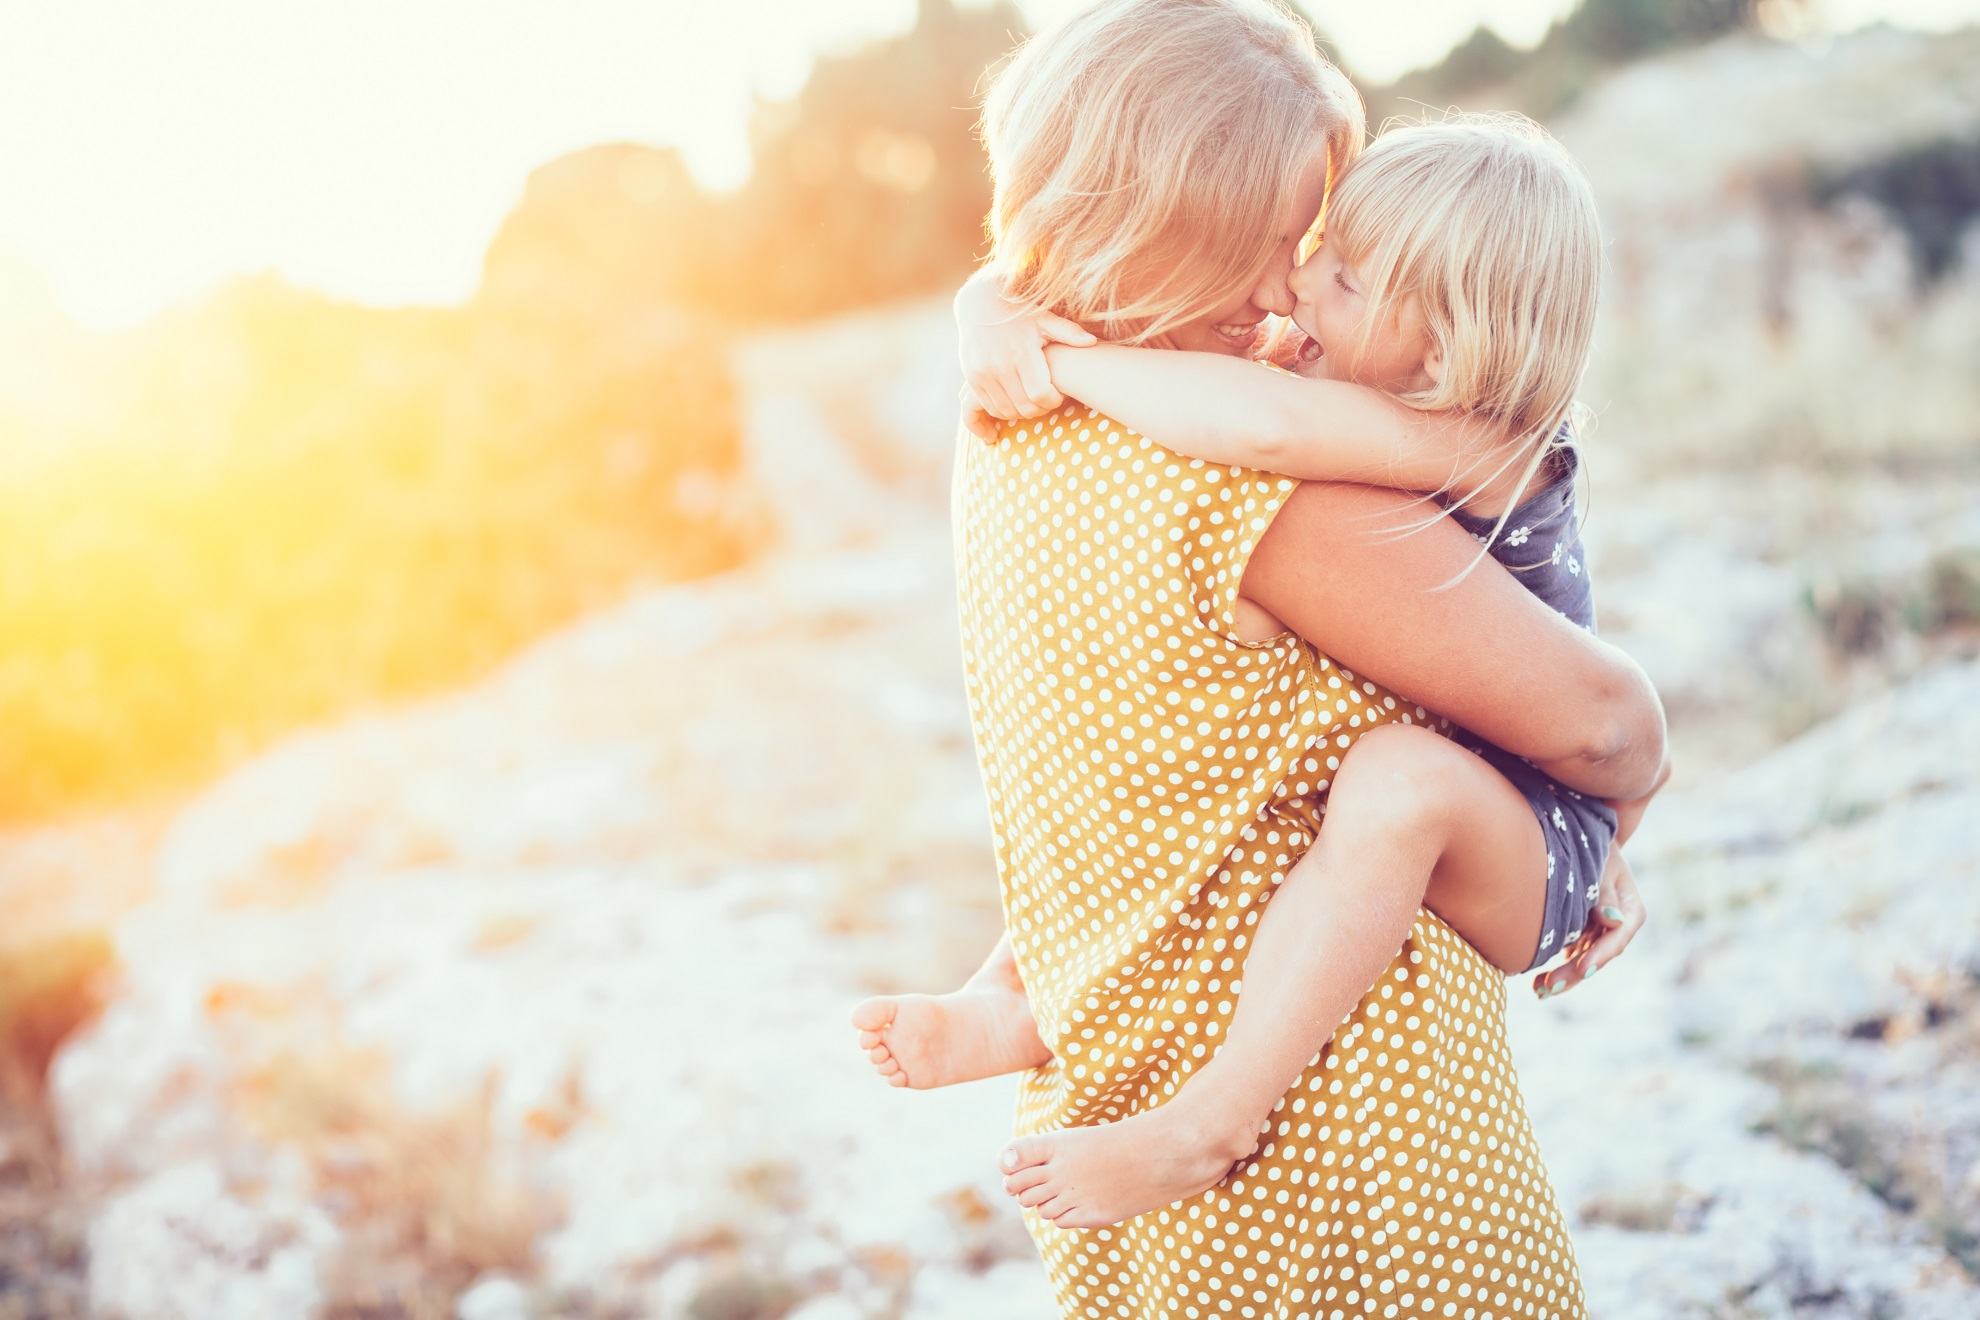 How to Deal with Children's Annoying Behaviors - Positively